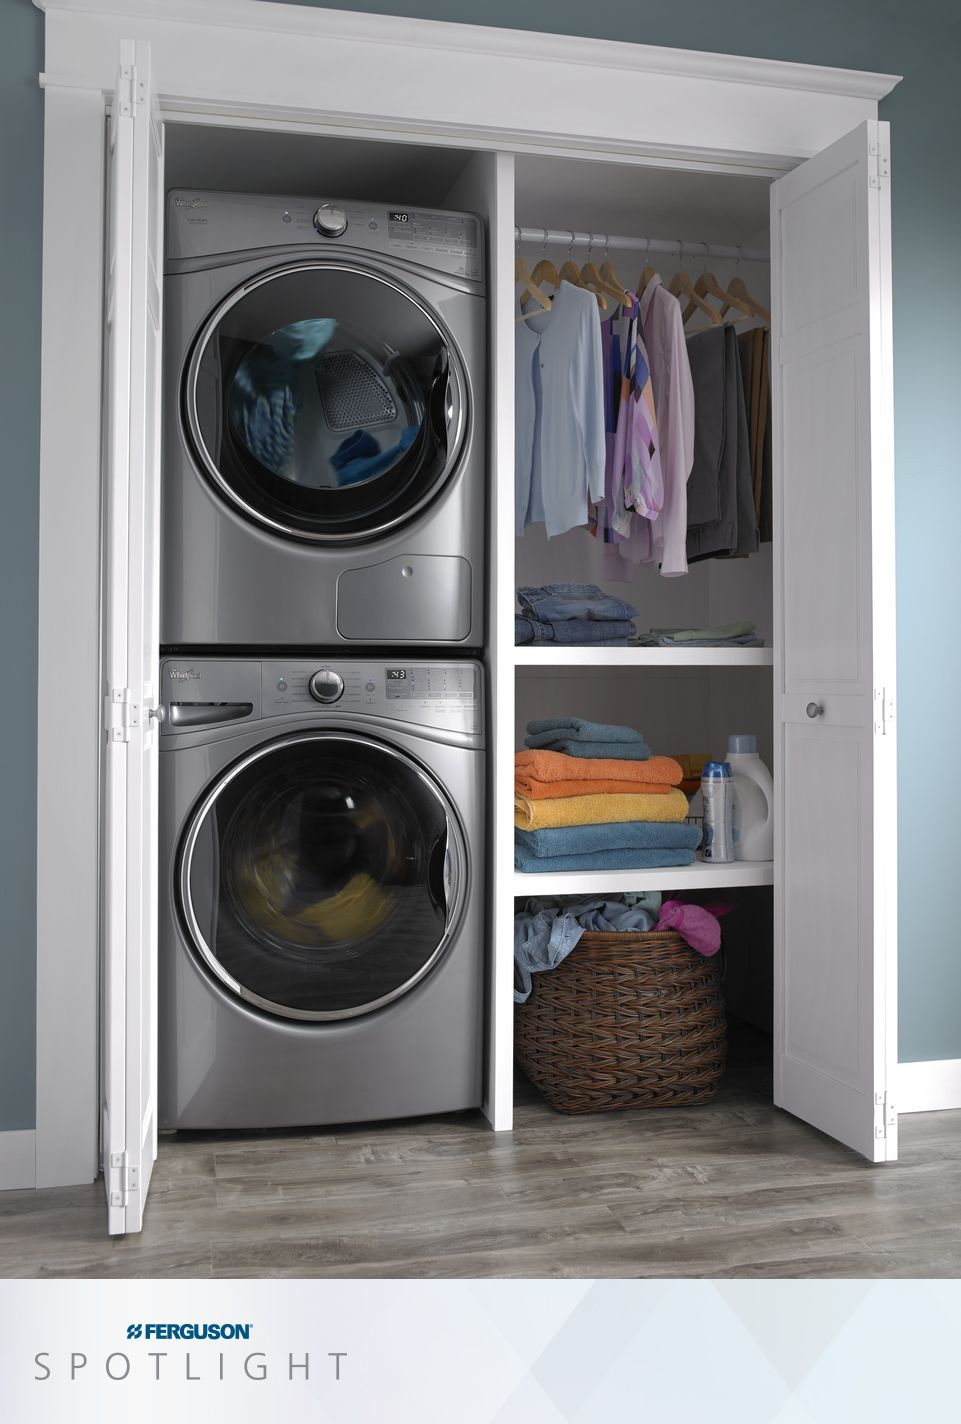 A Shallower Depth On Whirlpool Hybridcare Laundry Also Provides